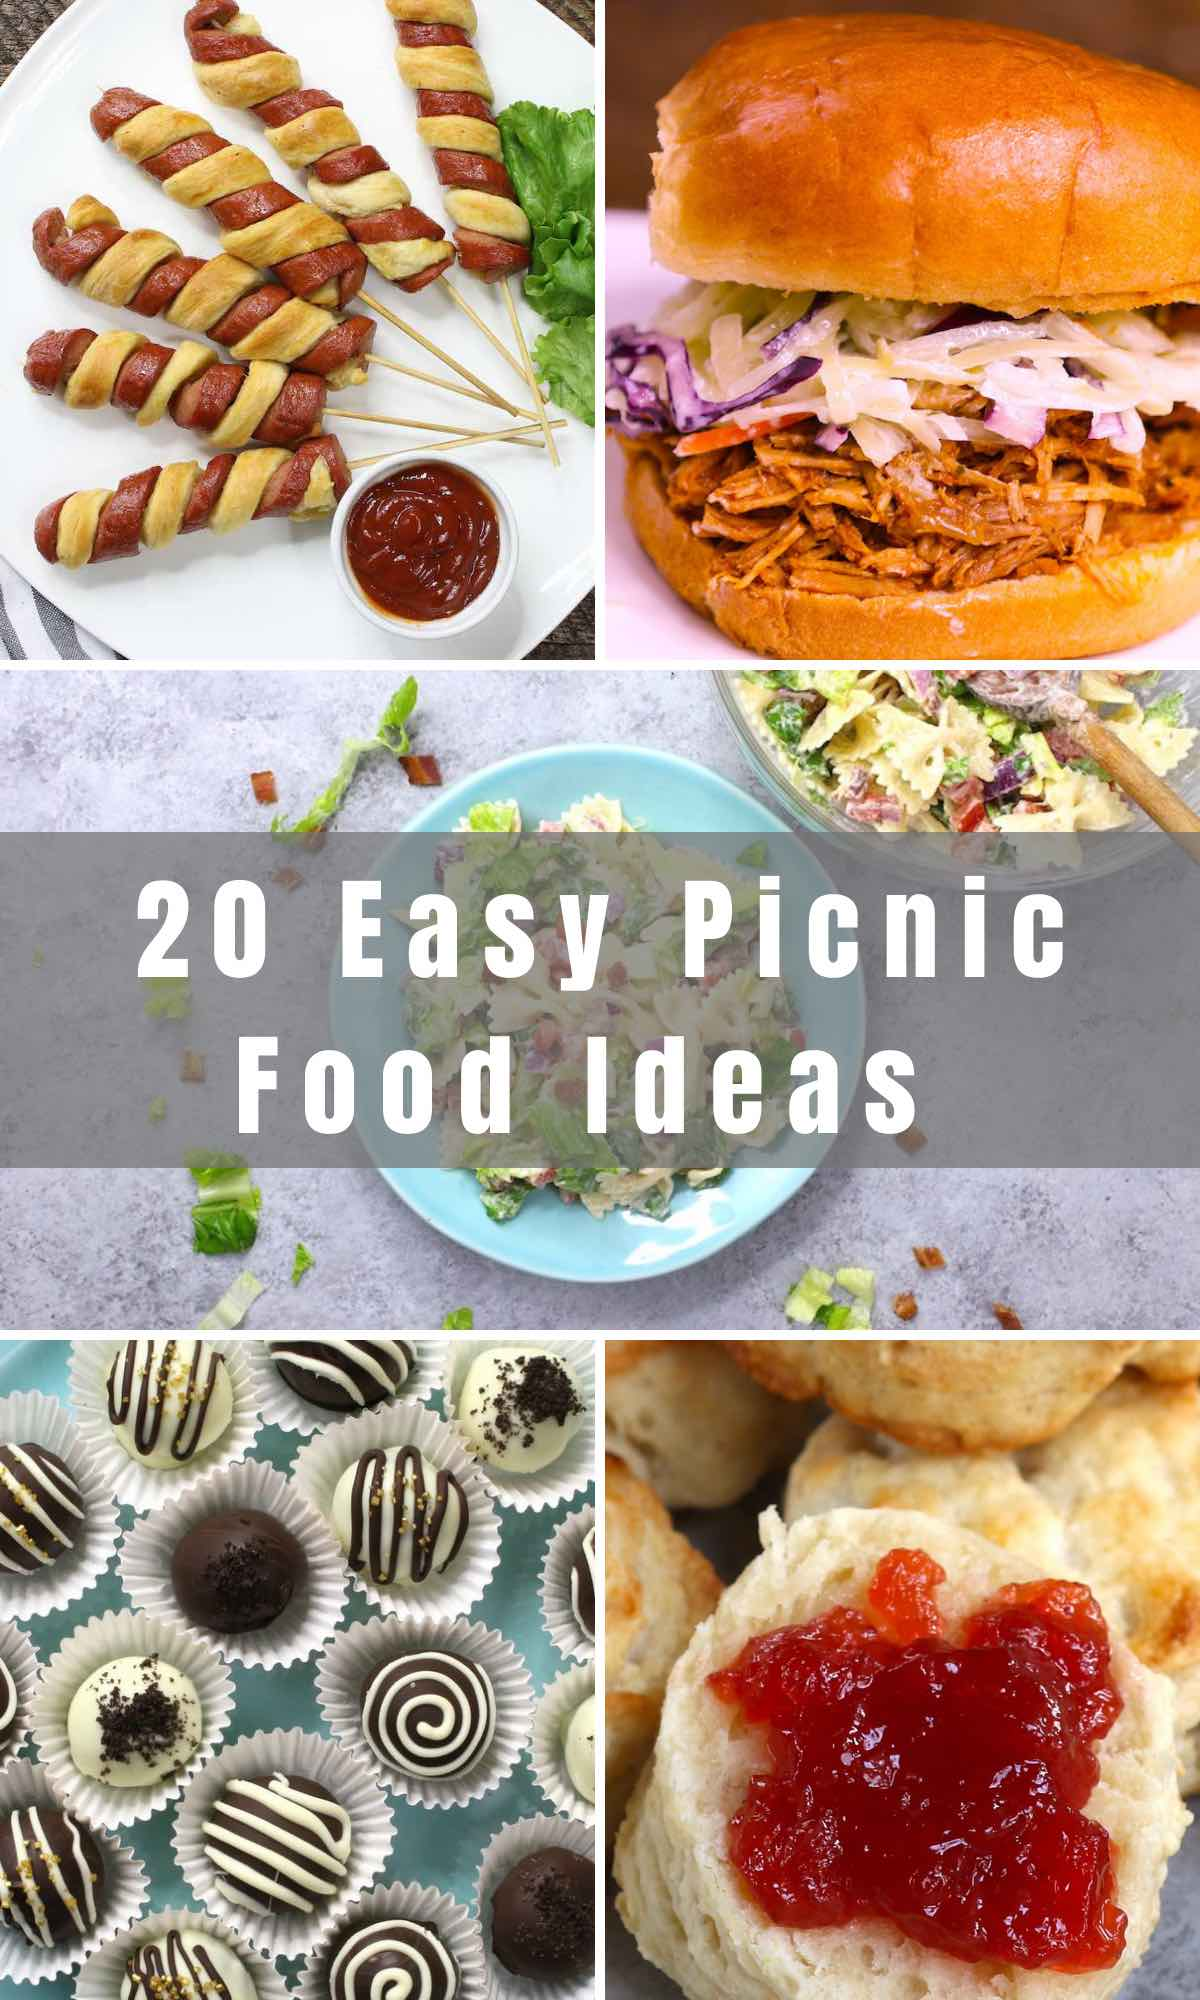 Picnics are great for meetups with friends, family outings or even a romantic date for two. We've rounded up 20 Easy Picnic Food Ideas, including popular items for kids and adults. Expand your picnic menu with a few of these unique and exciting recipes!